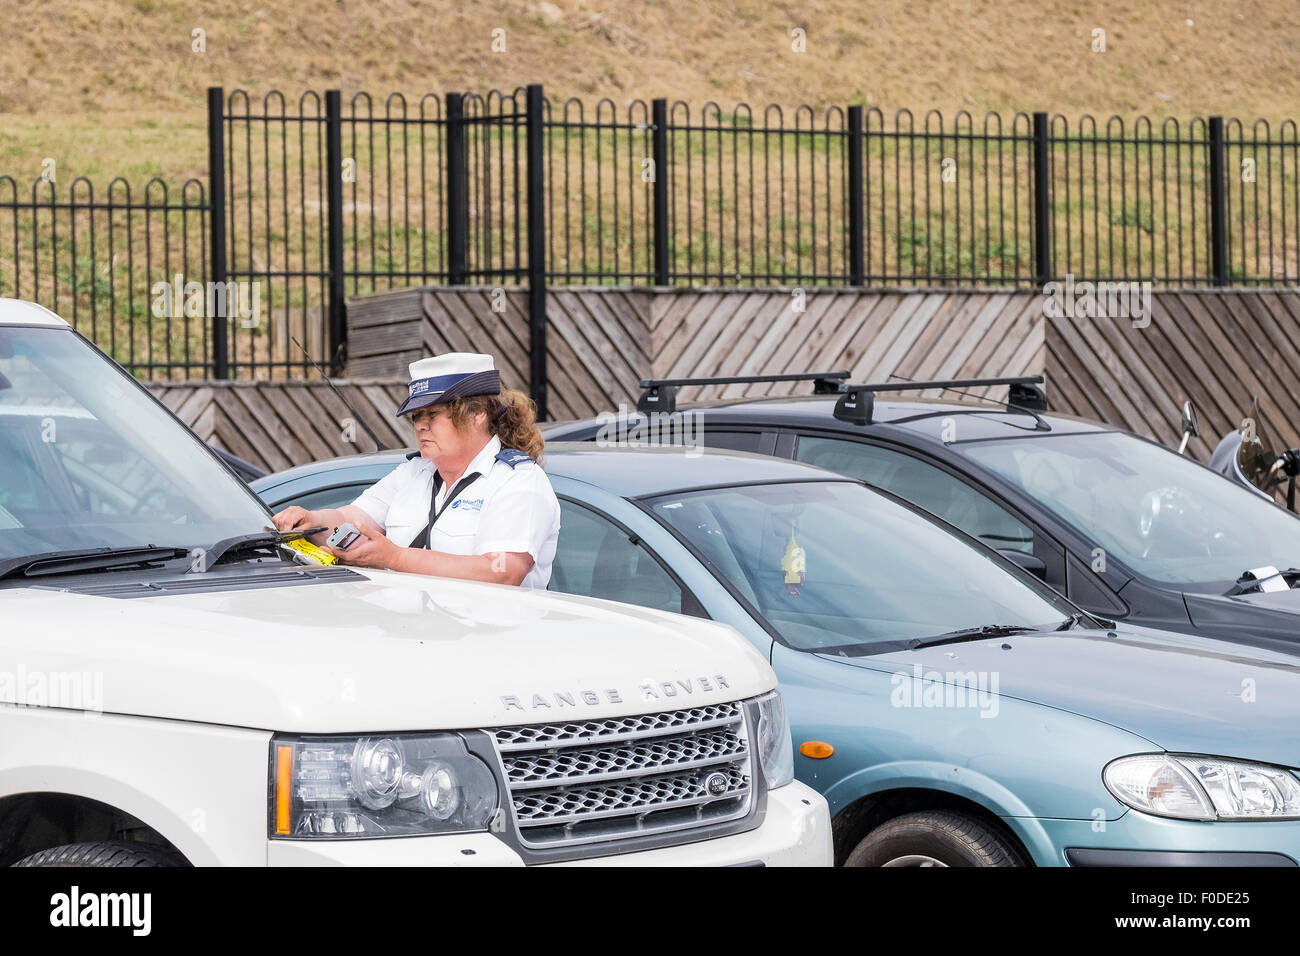 A Traffic Warden issuing a parking ticket on Southend seafront in Essex. - Stock Image